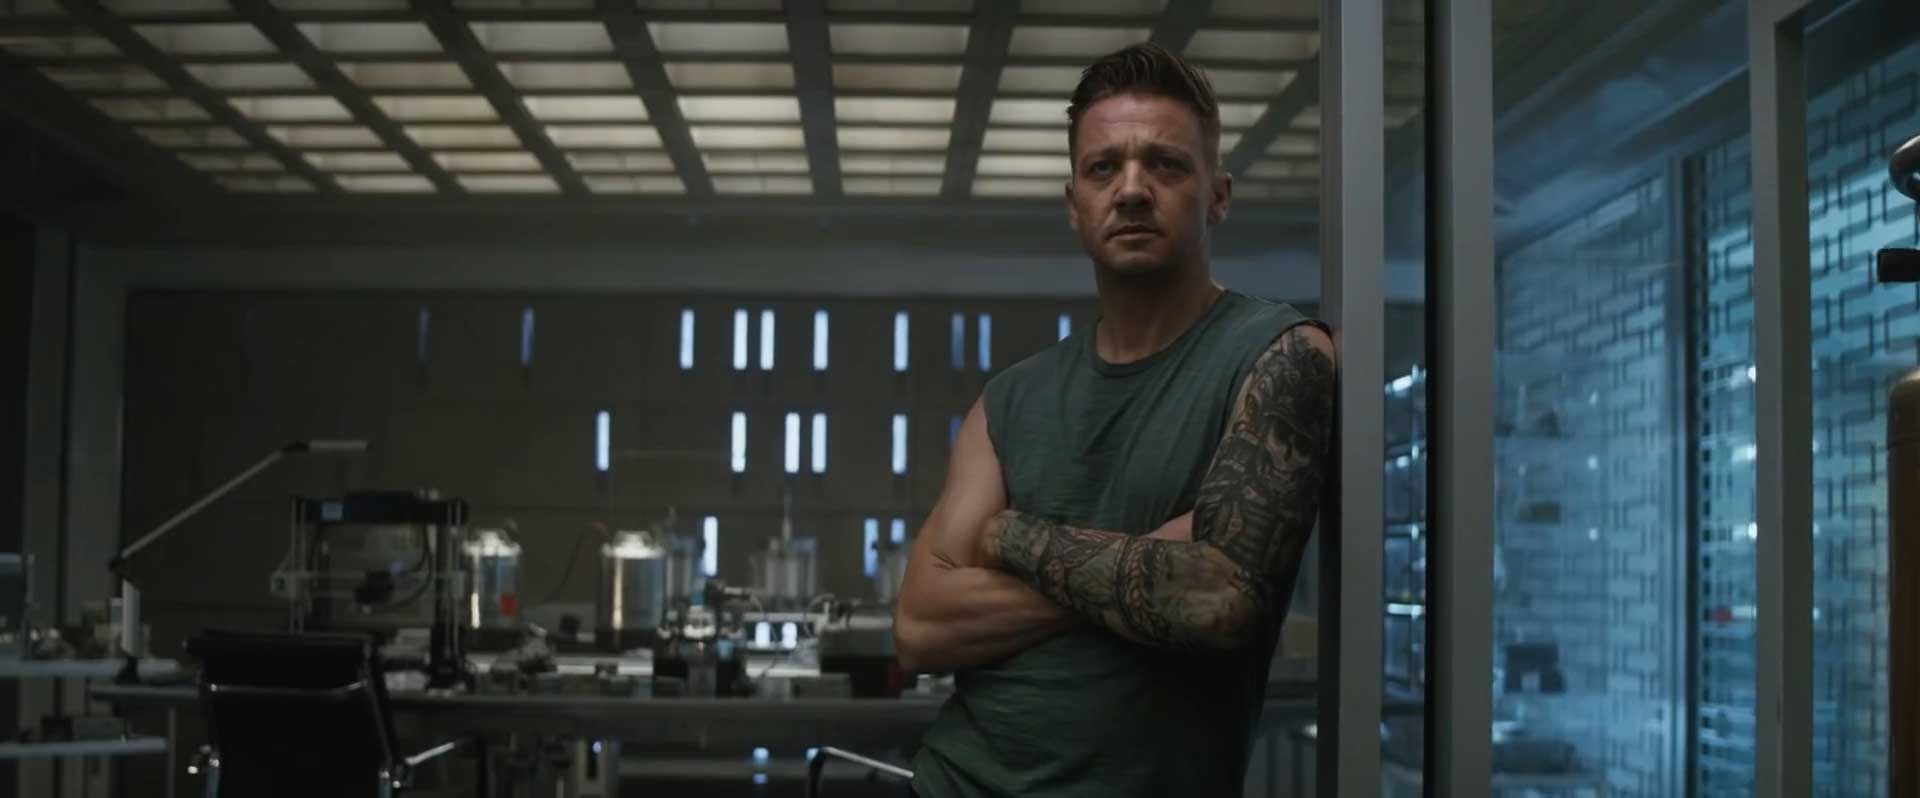 Avengers Endgame Special Look Trailer Breakdown - Hawkeye Tattoo